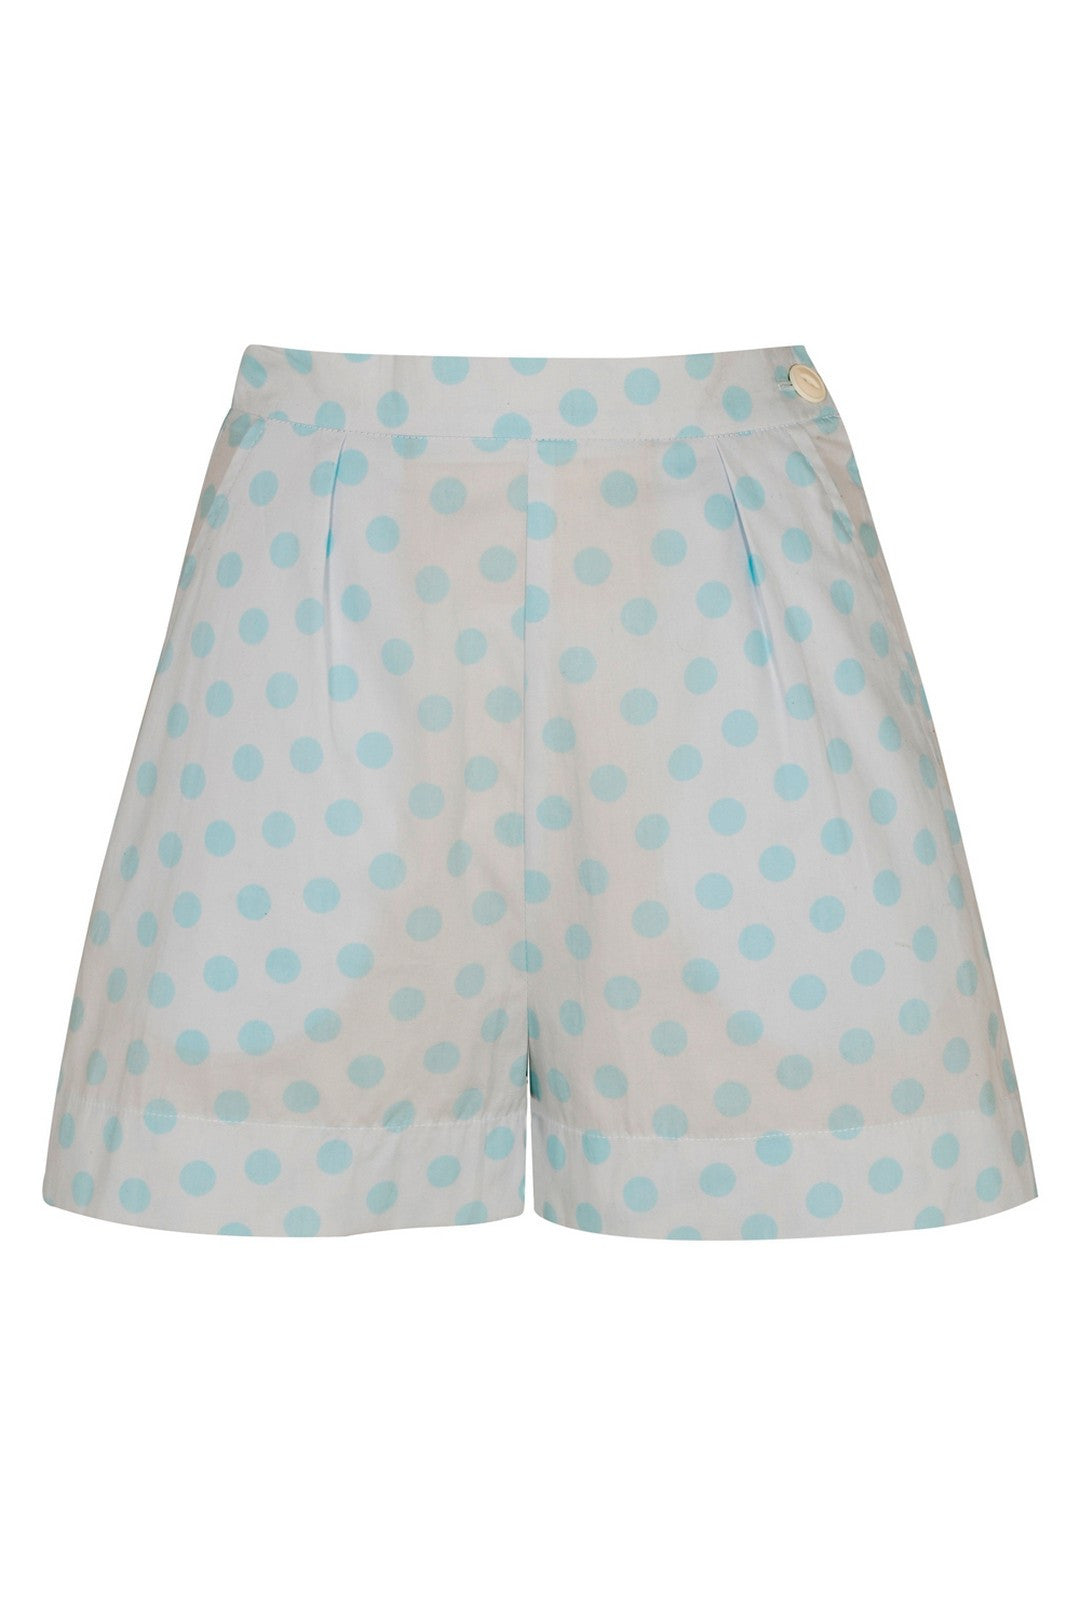 The Polkadot Shorts - Aqua